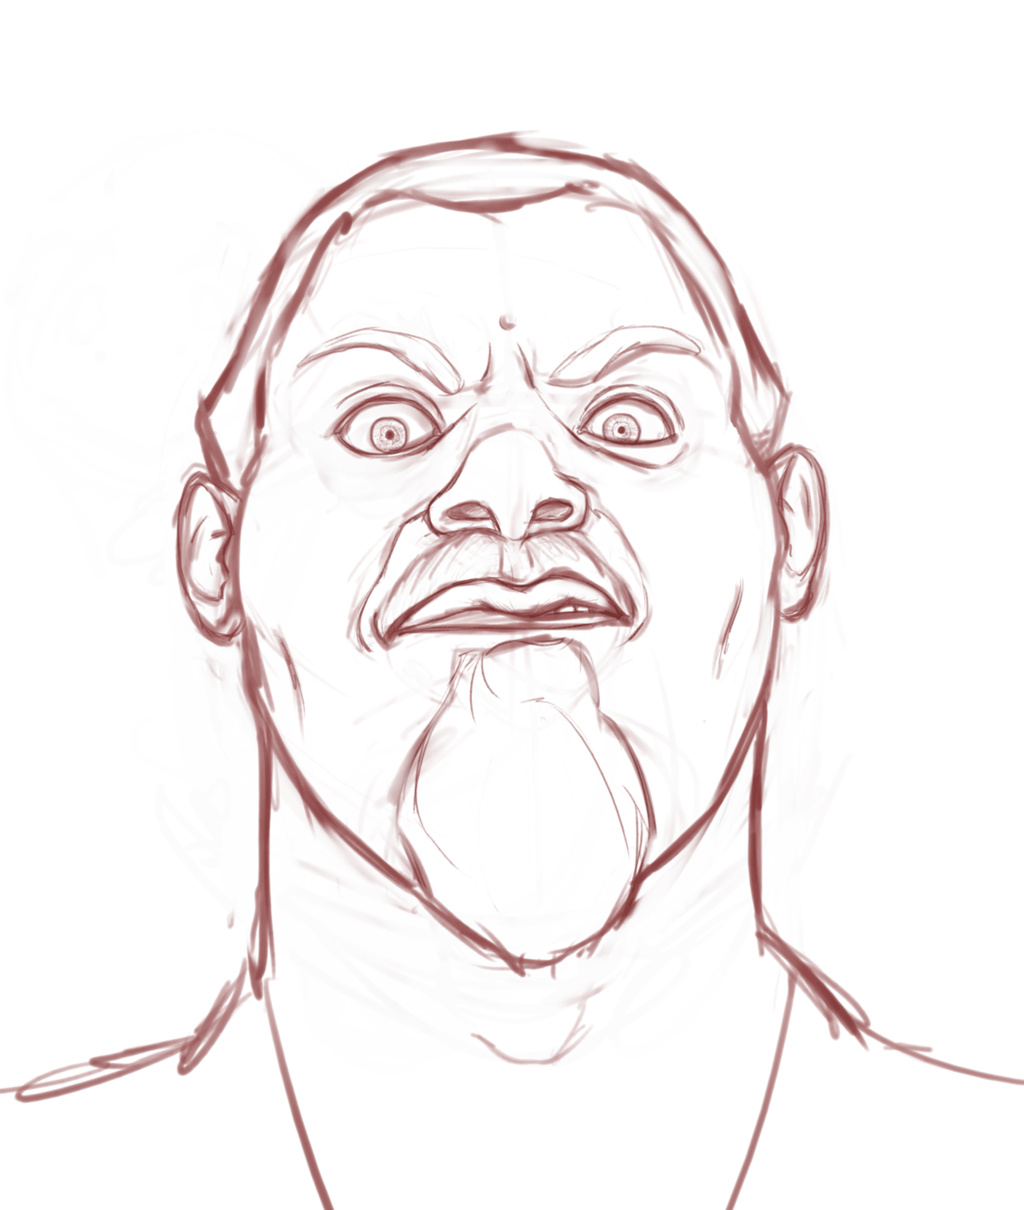 Sketch - Self-portrait (Angry)